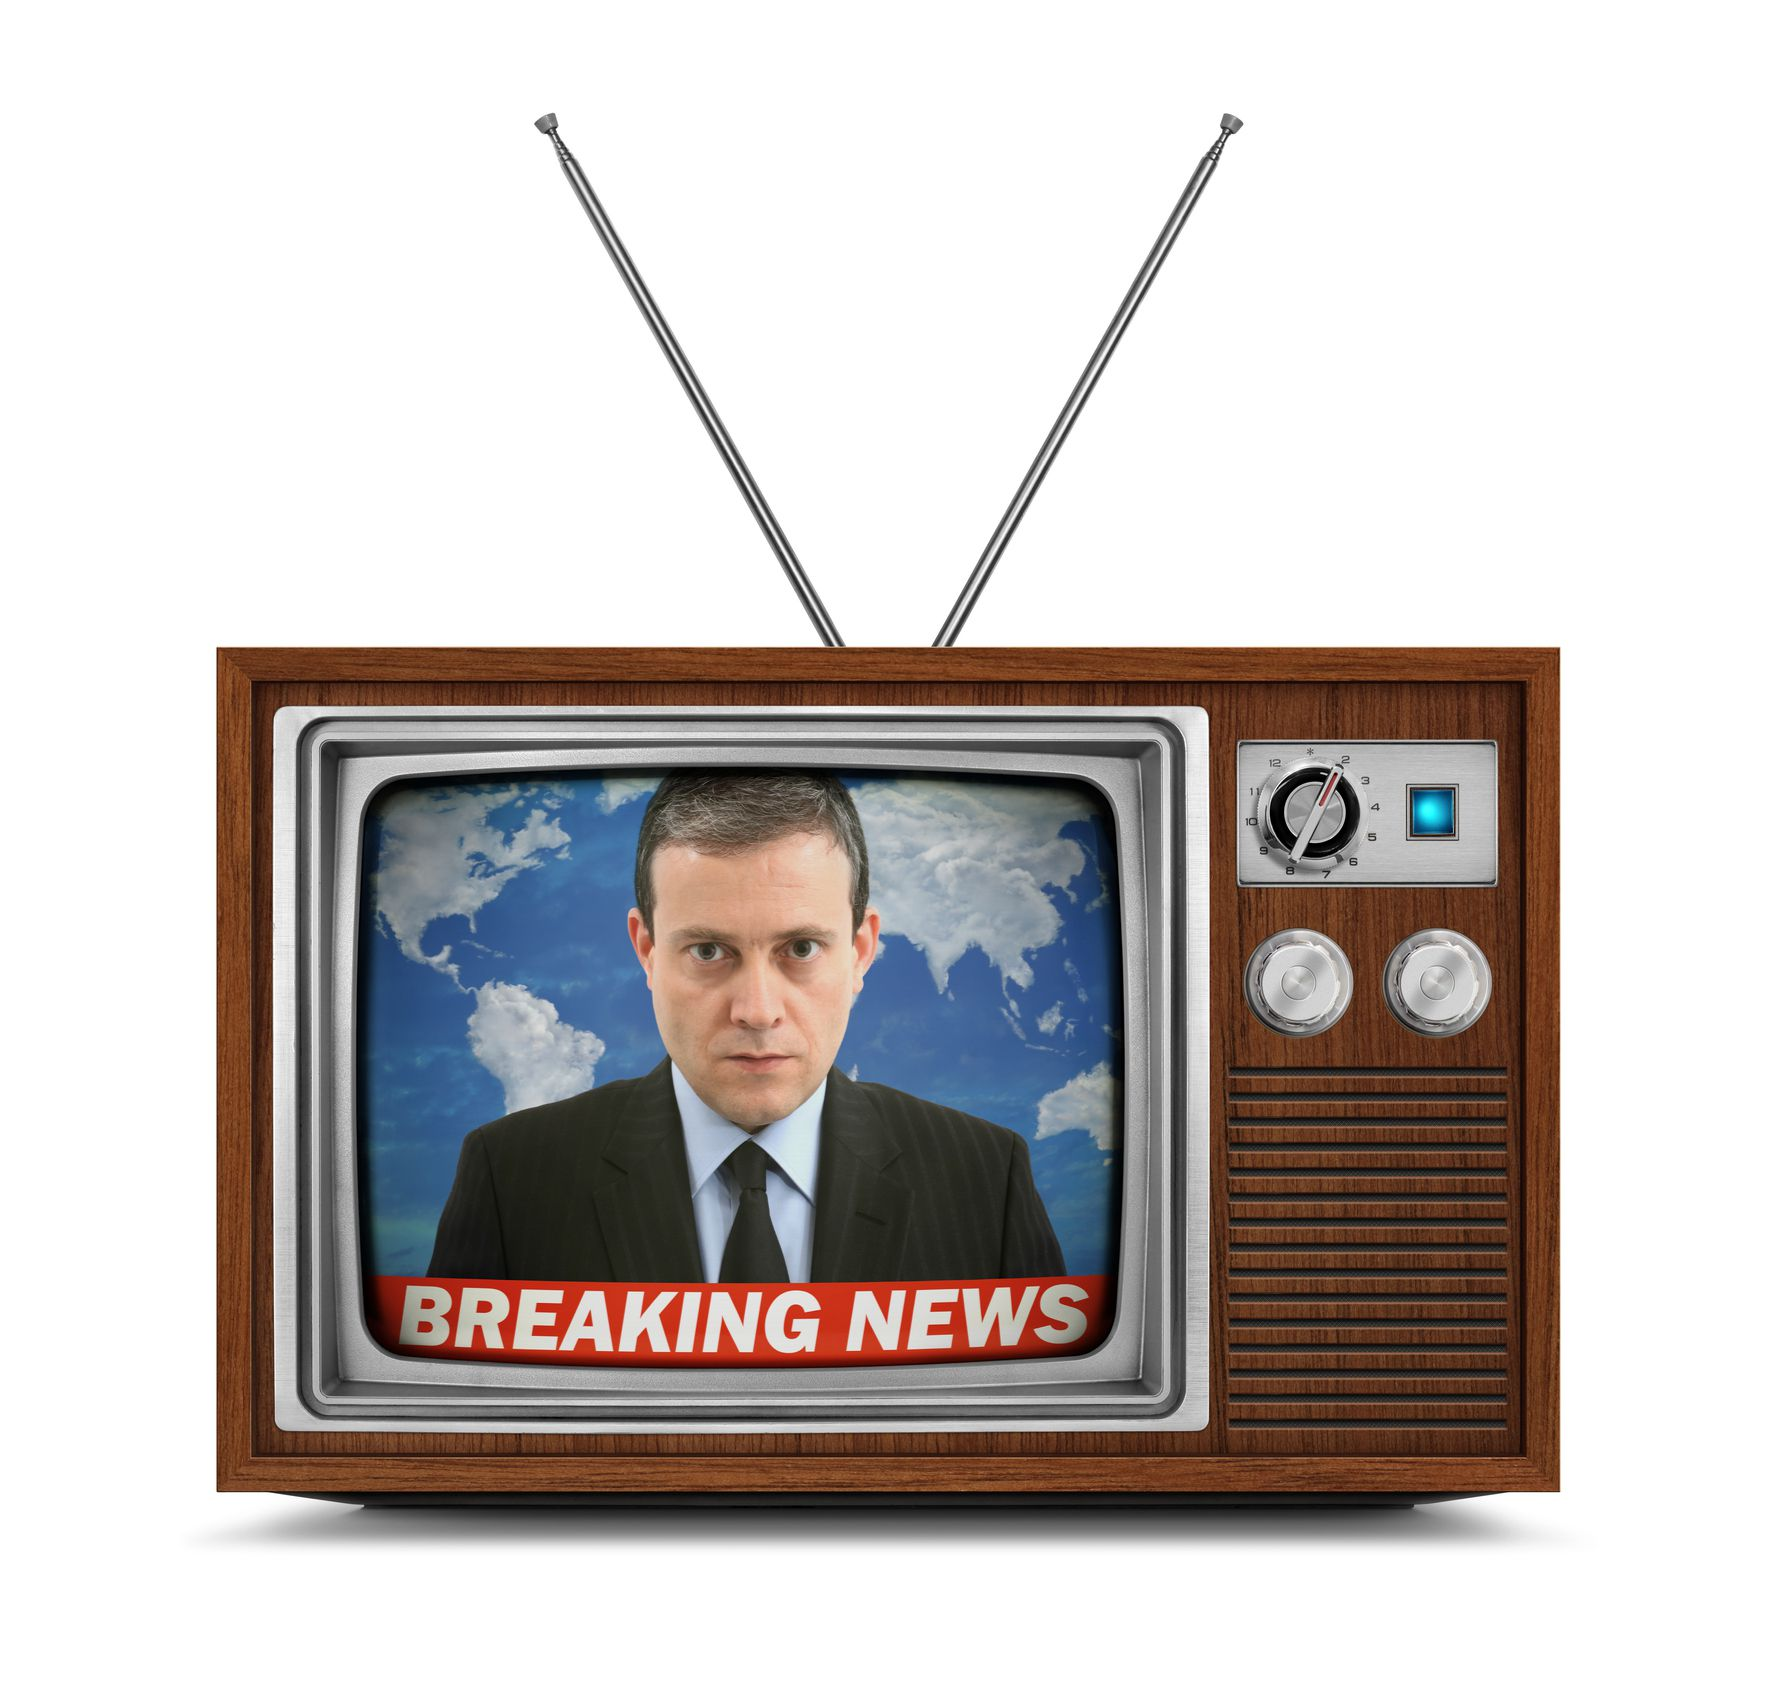 Viral News Webster Terms: Why Is There So Much Breaking News On TV?